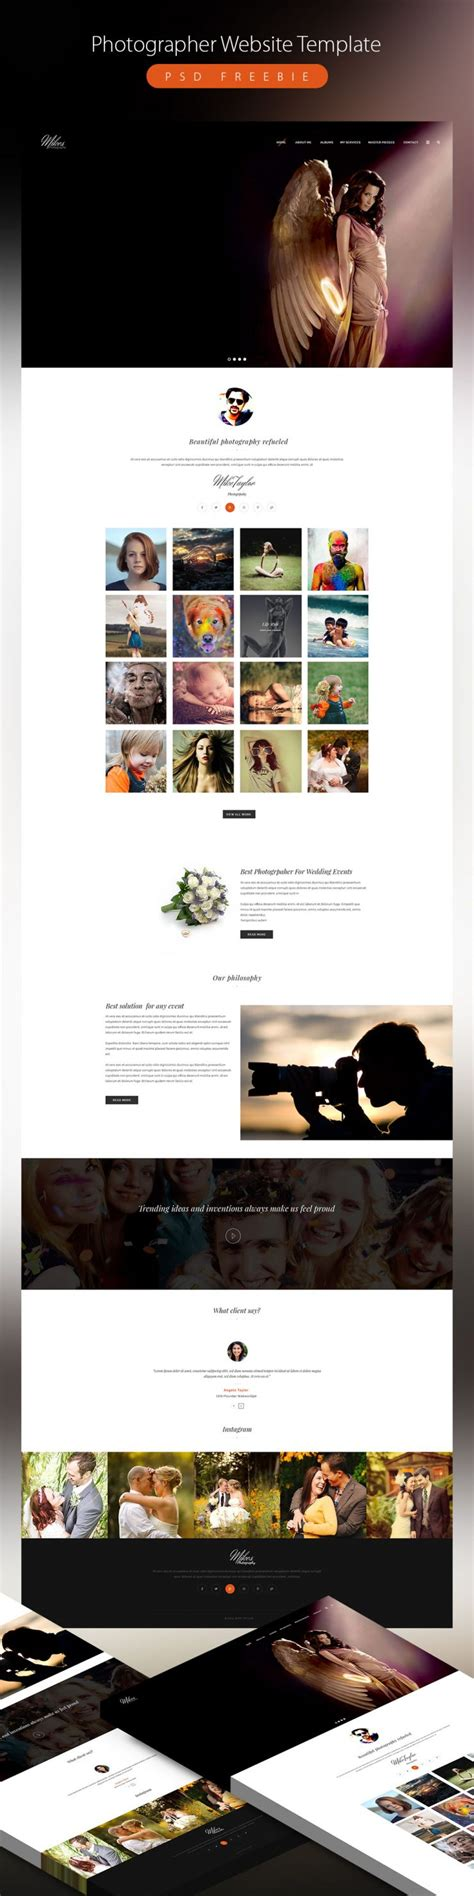 best website templates for photographers clean photographer website template psd freebie psd